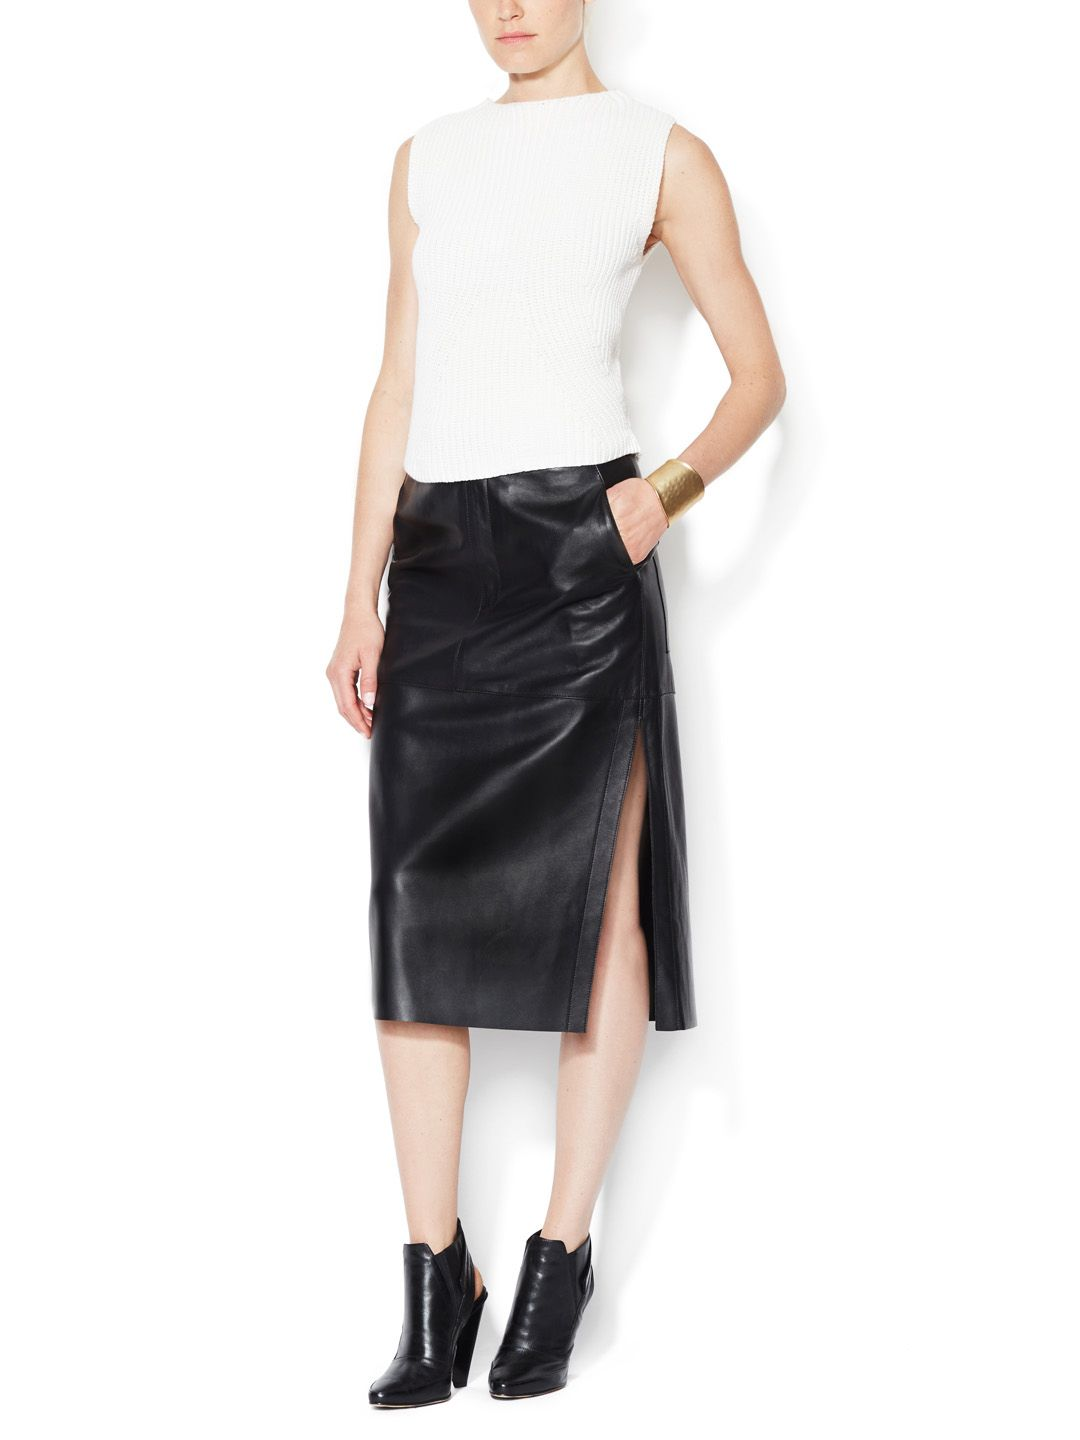 Leather high waisted pencil skirt by Helmut Lang